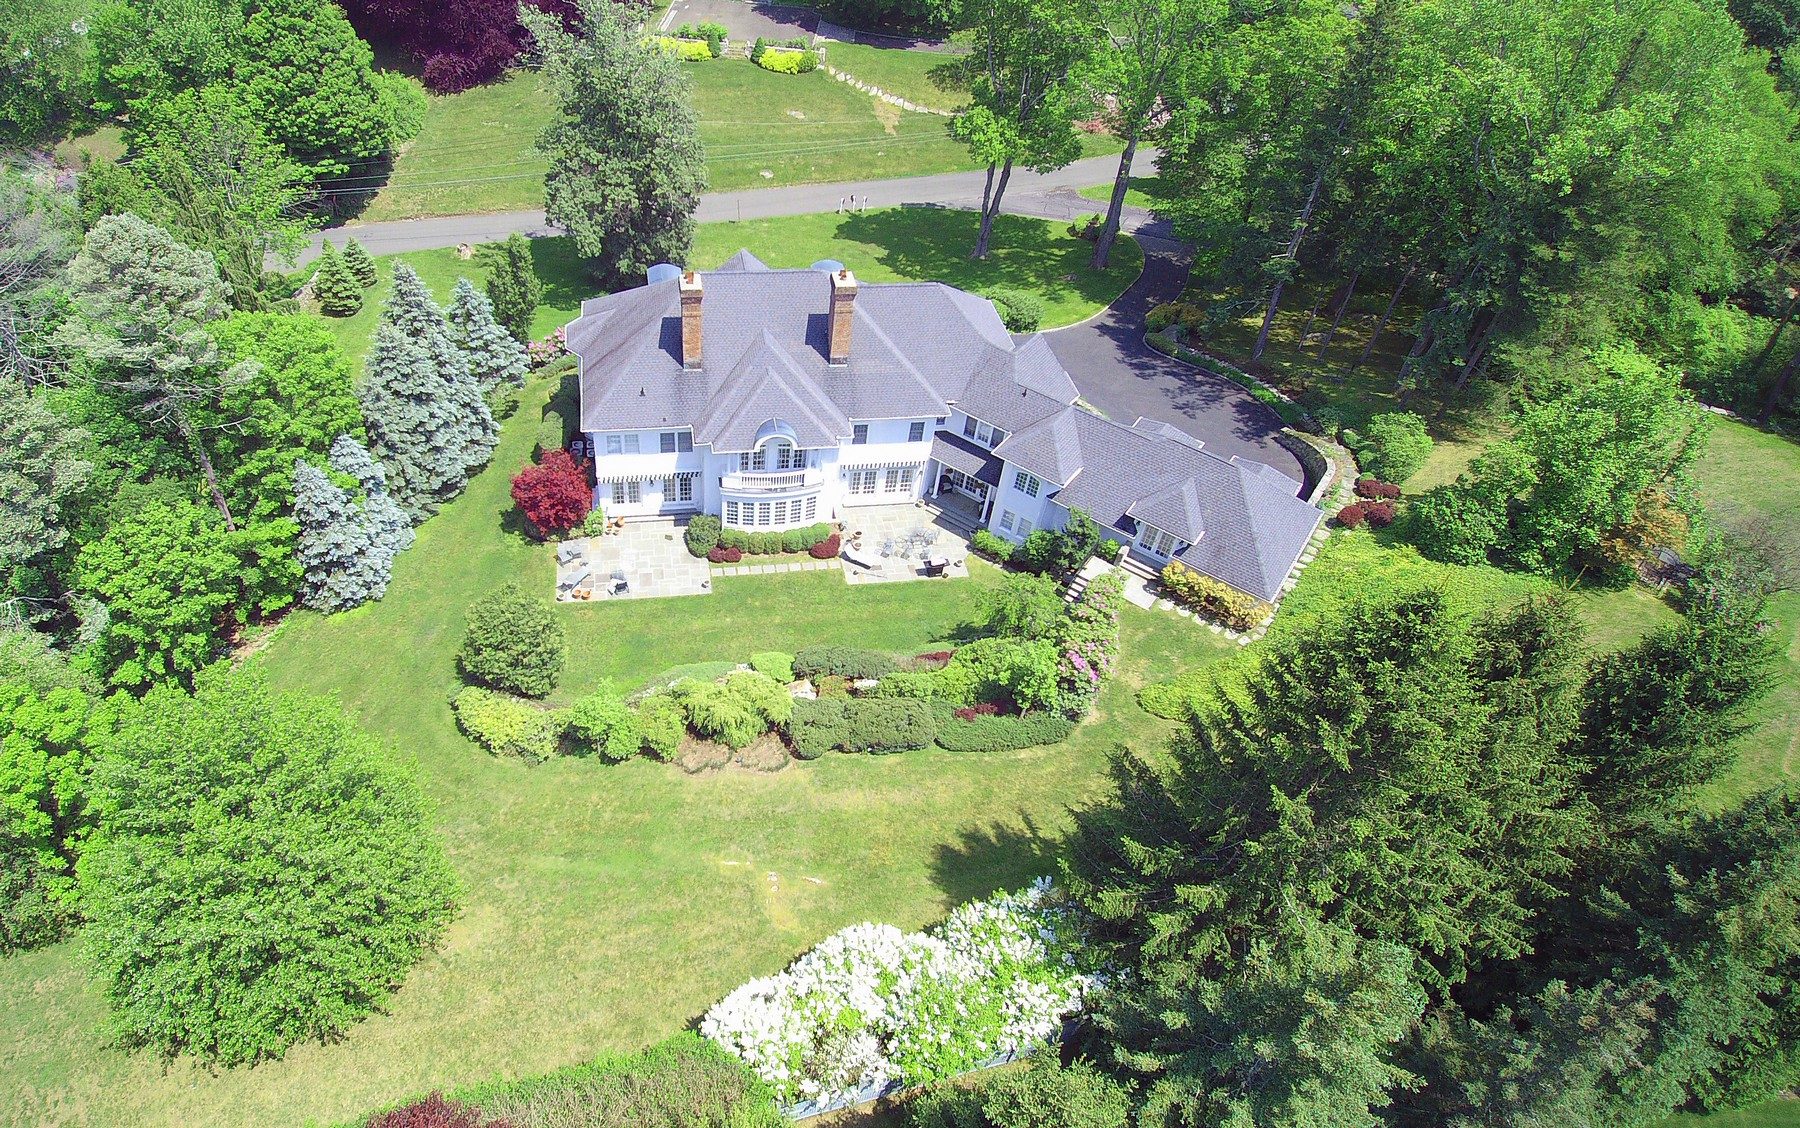 Single Family Home for Sale at Exquisite Custom Home 6 Country Club Road Ridgefield, Connecticut, 06877 United States